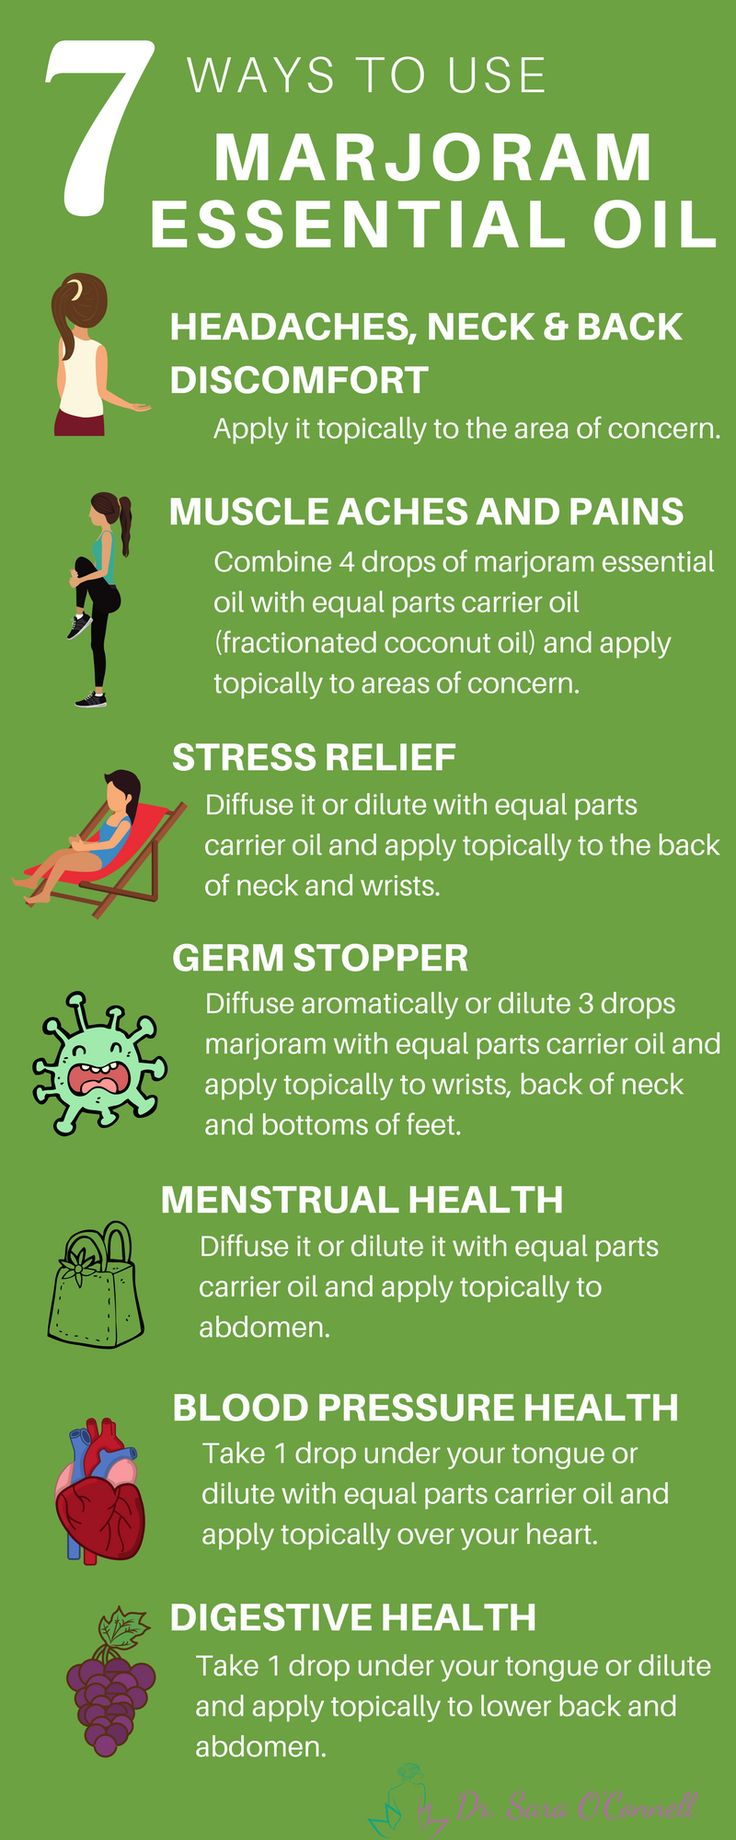 Marjoram essential oil is a great oil for promoting peace, sleep, calmness and decreasing stress, aches pains and much more. Essential oils are plant based medicine with extensive uses and benefits. Repin to share with your loved ones and click the image for much more!